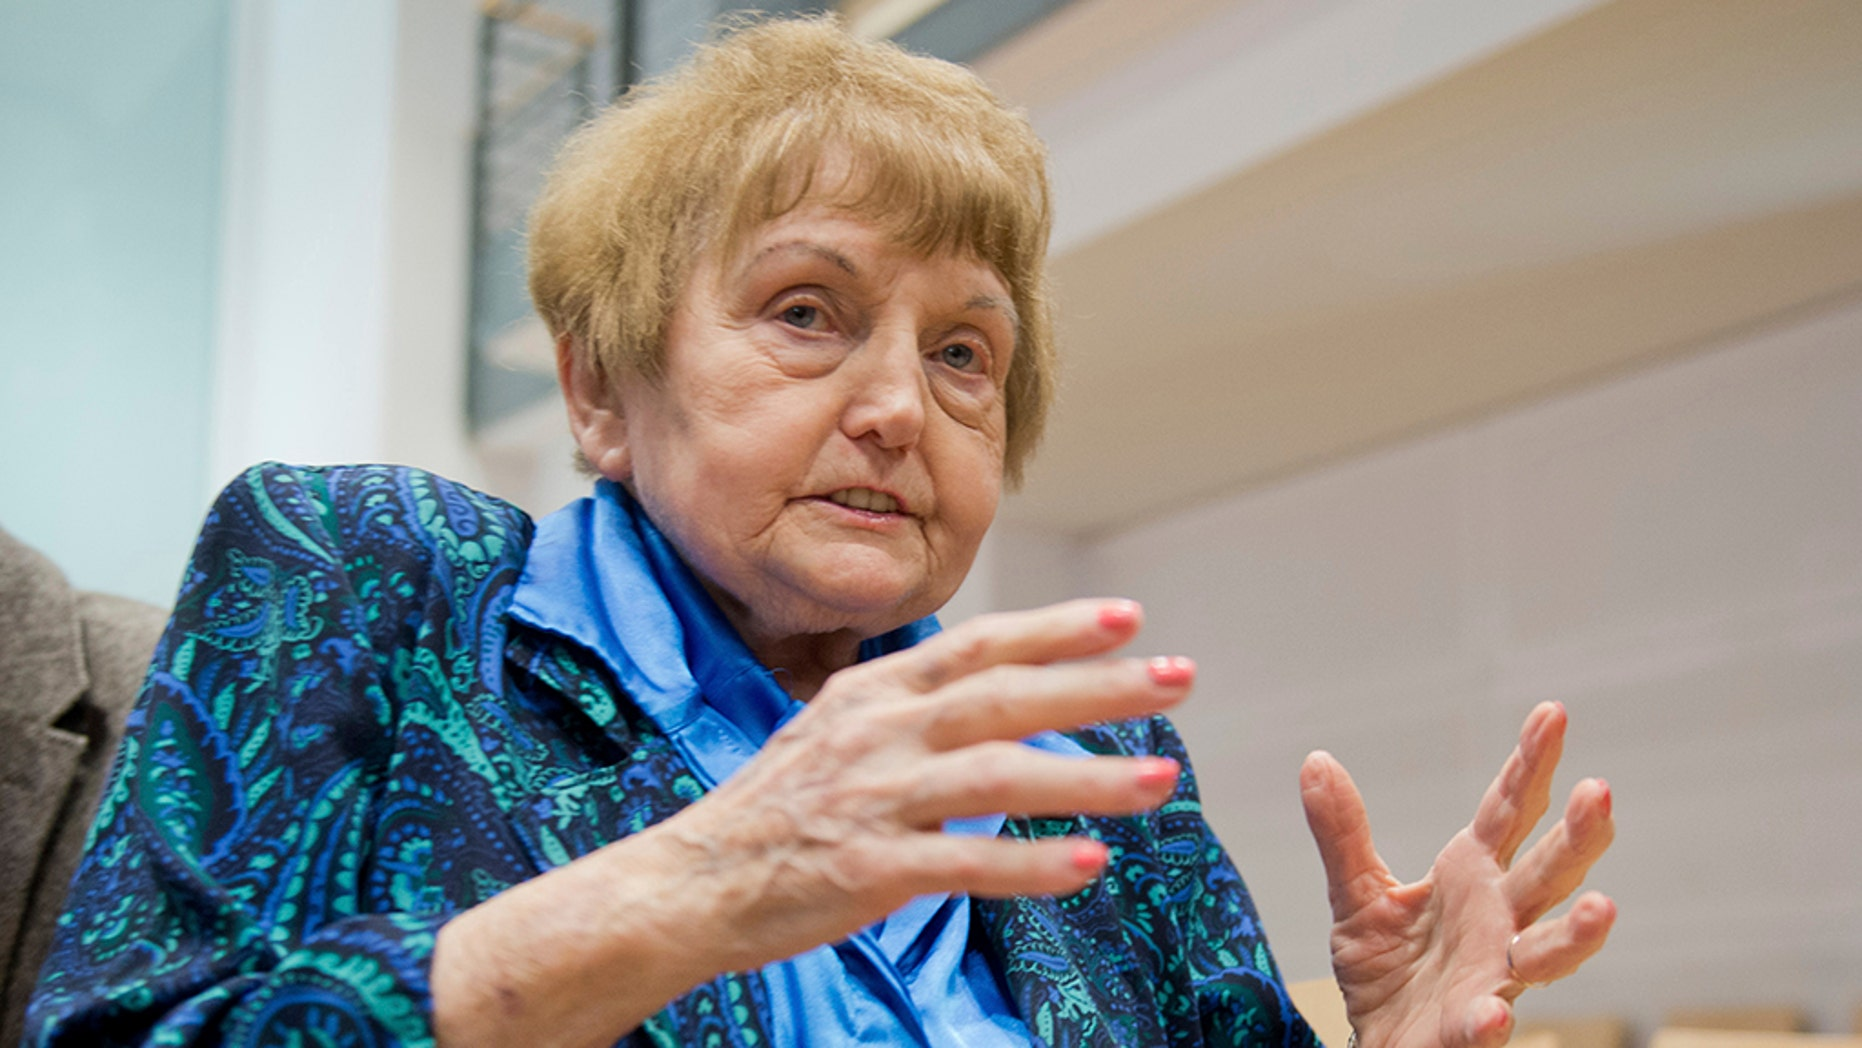 Westlake Legal Group Eva-Kor-AP Eva Kor, Holocaust survivor, dies peacefully at age 85 fox-news/world/world-regions/europe fox-news/us/us-regions/midwest/indiana fox-news/topic/holocaust fox news fnc/us fnc f318322b-a664-556e-844f-57dc5081e67e Barnini Chakraborty article